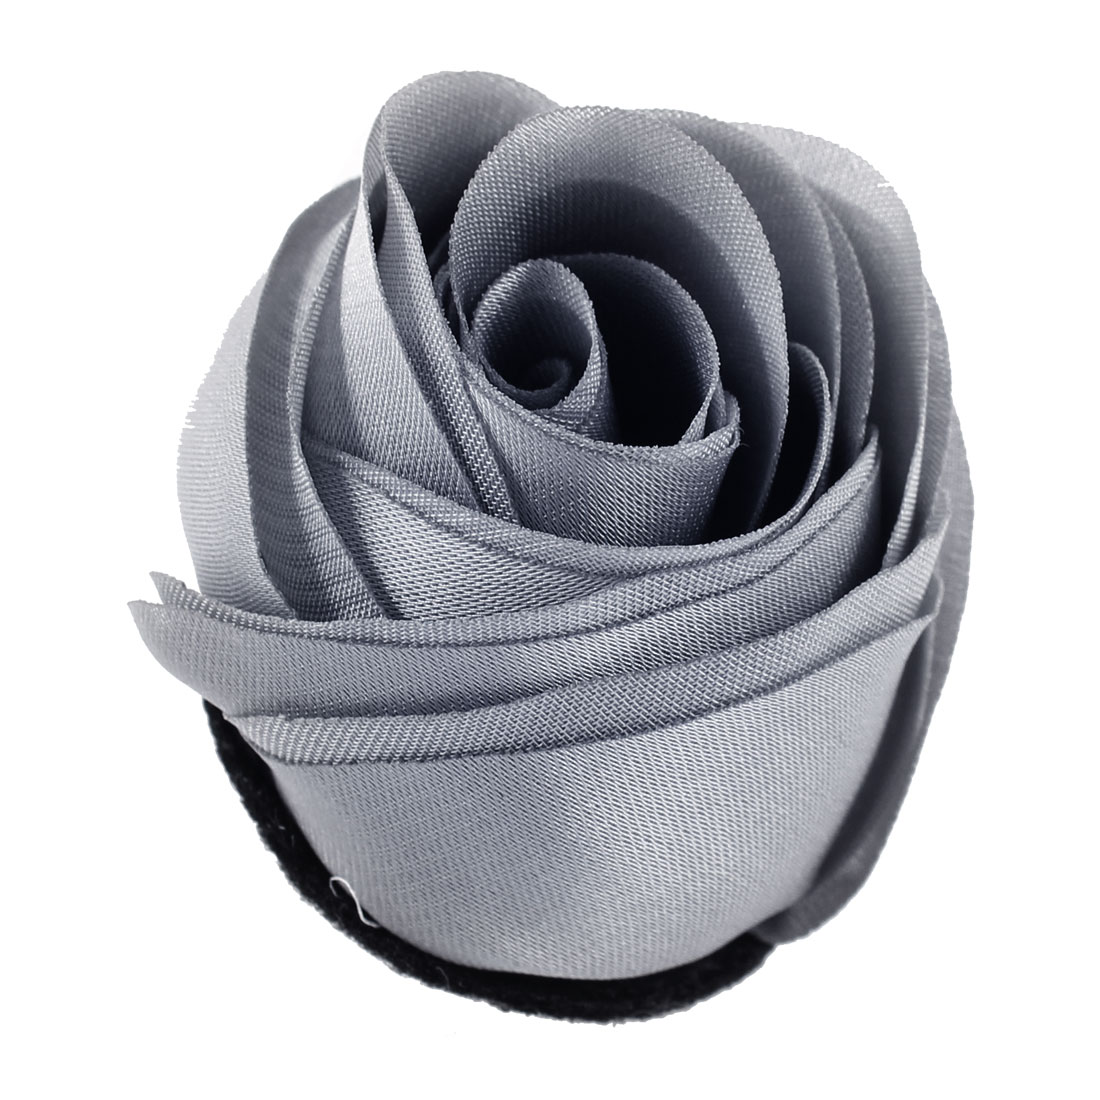 Woman Chiffon Fabric Flower Shape Corsage Brooch Pin Silver Gray